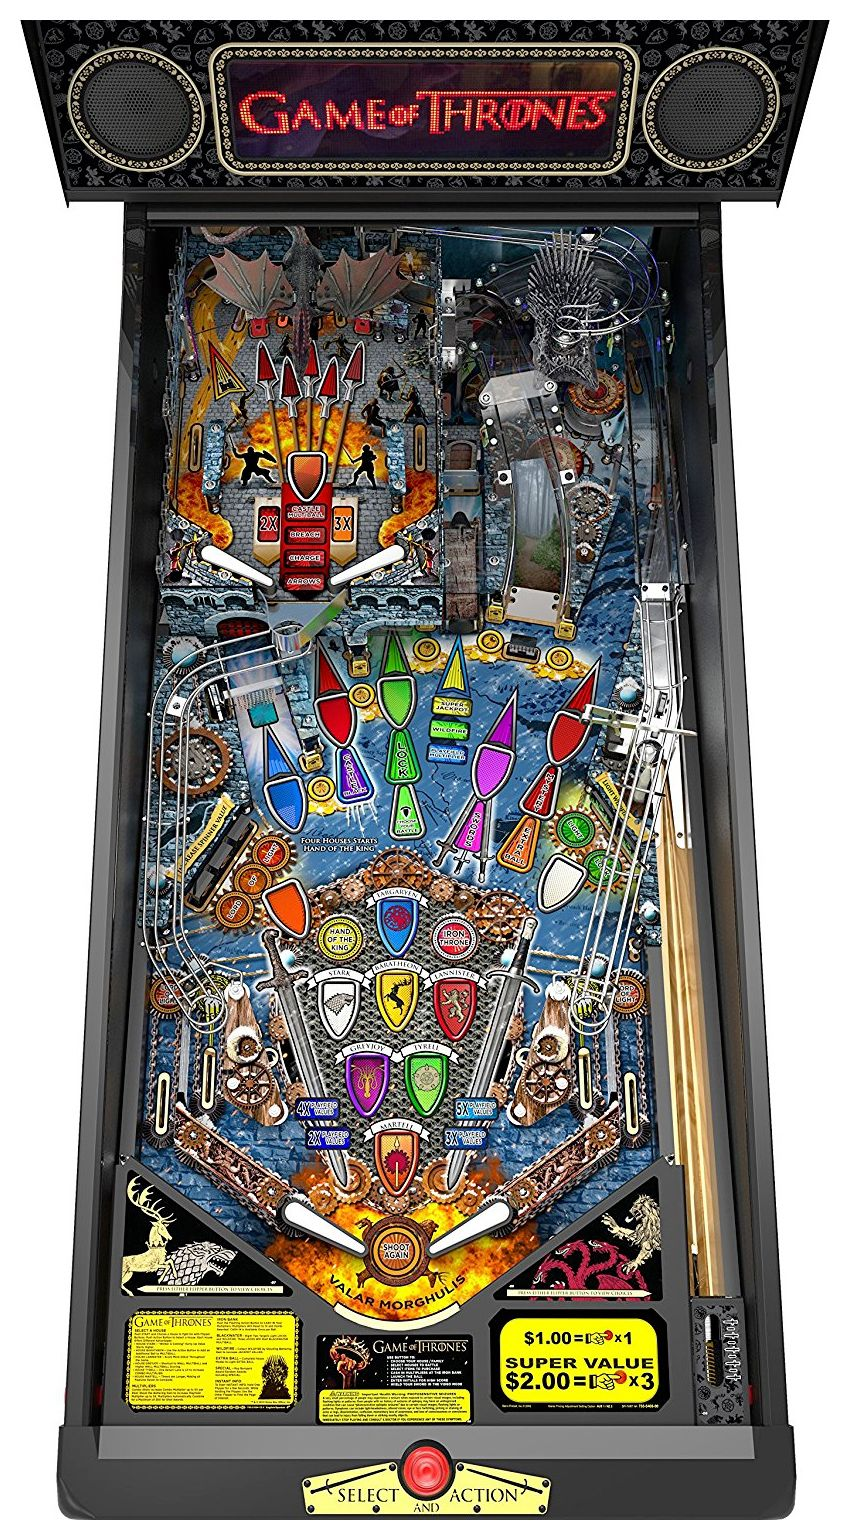 Game-of-Thrones-Pinball-Premium-Arcade-Pinball-Machine-04